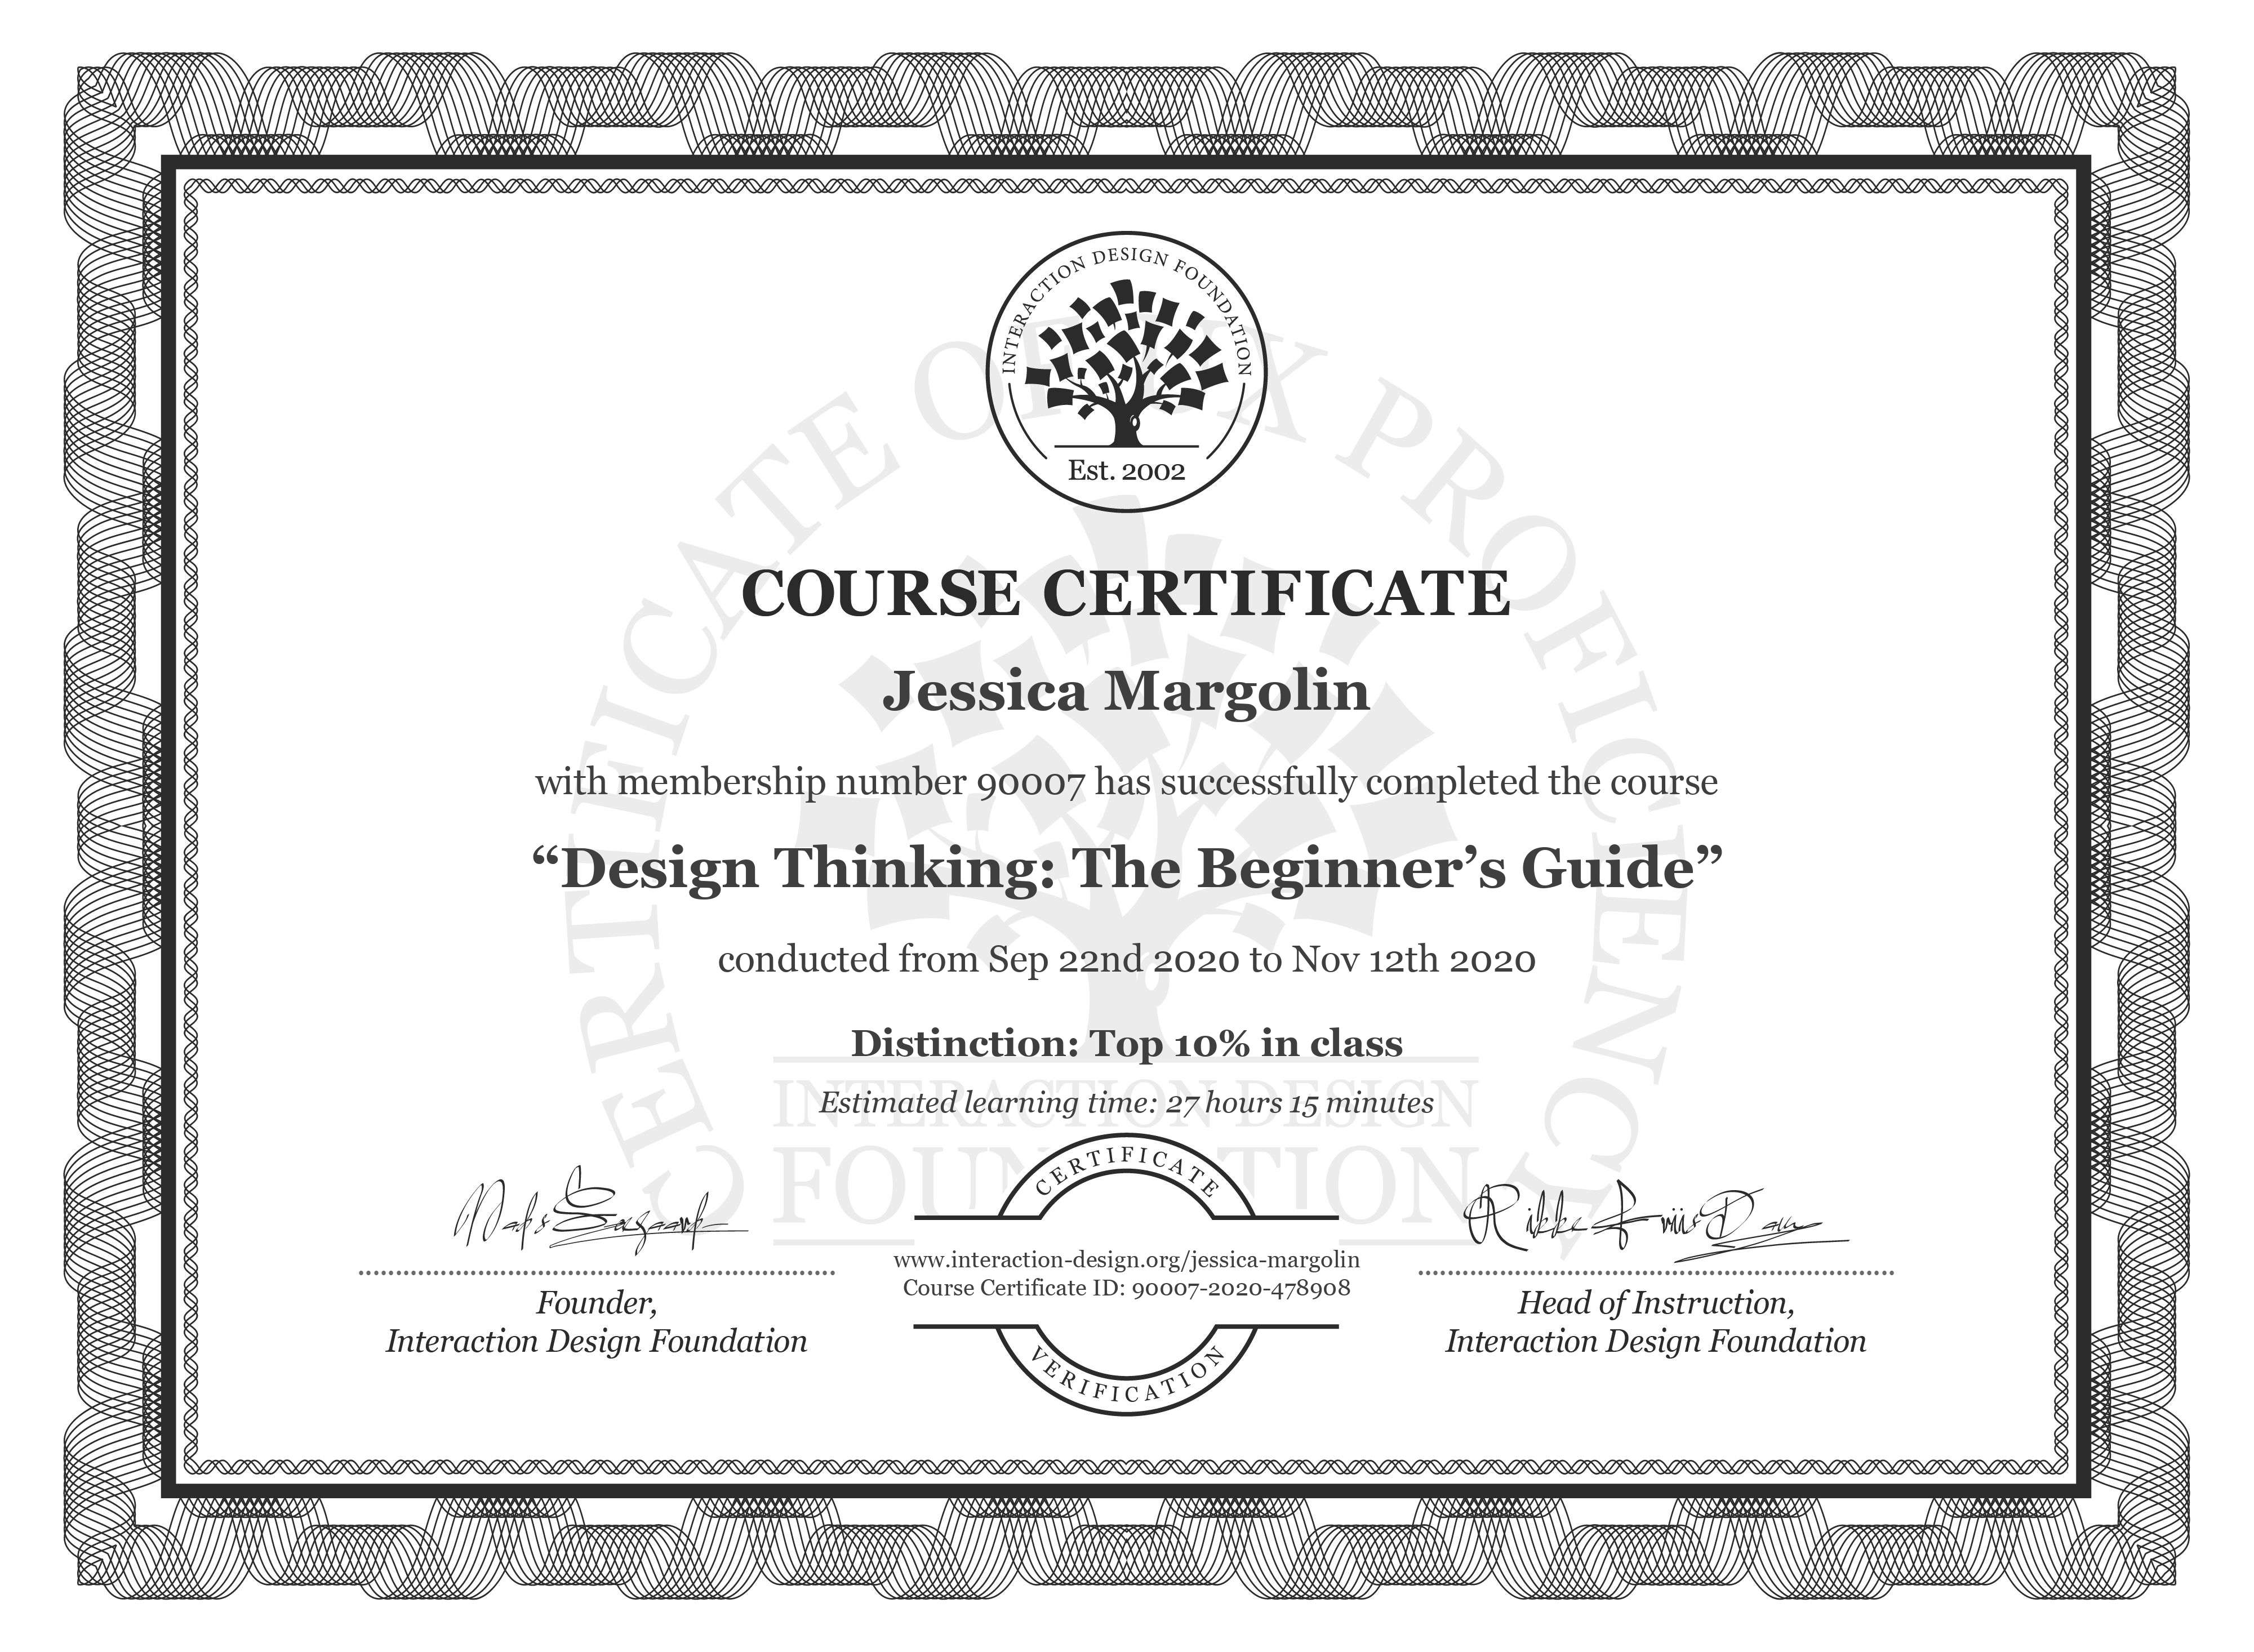 Jessica Margolin's Course Certificate: Design Thinking: The Beginner's Guide